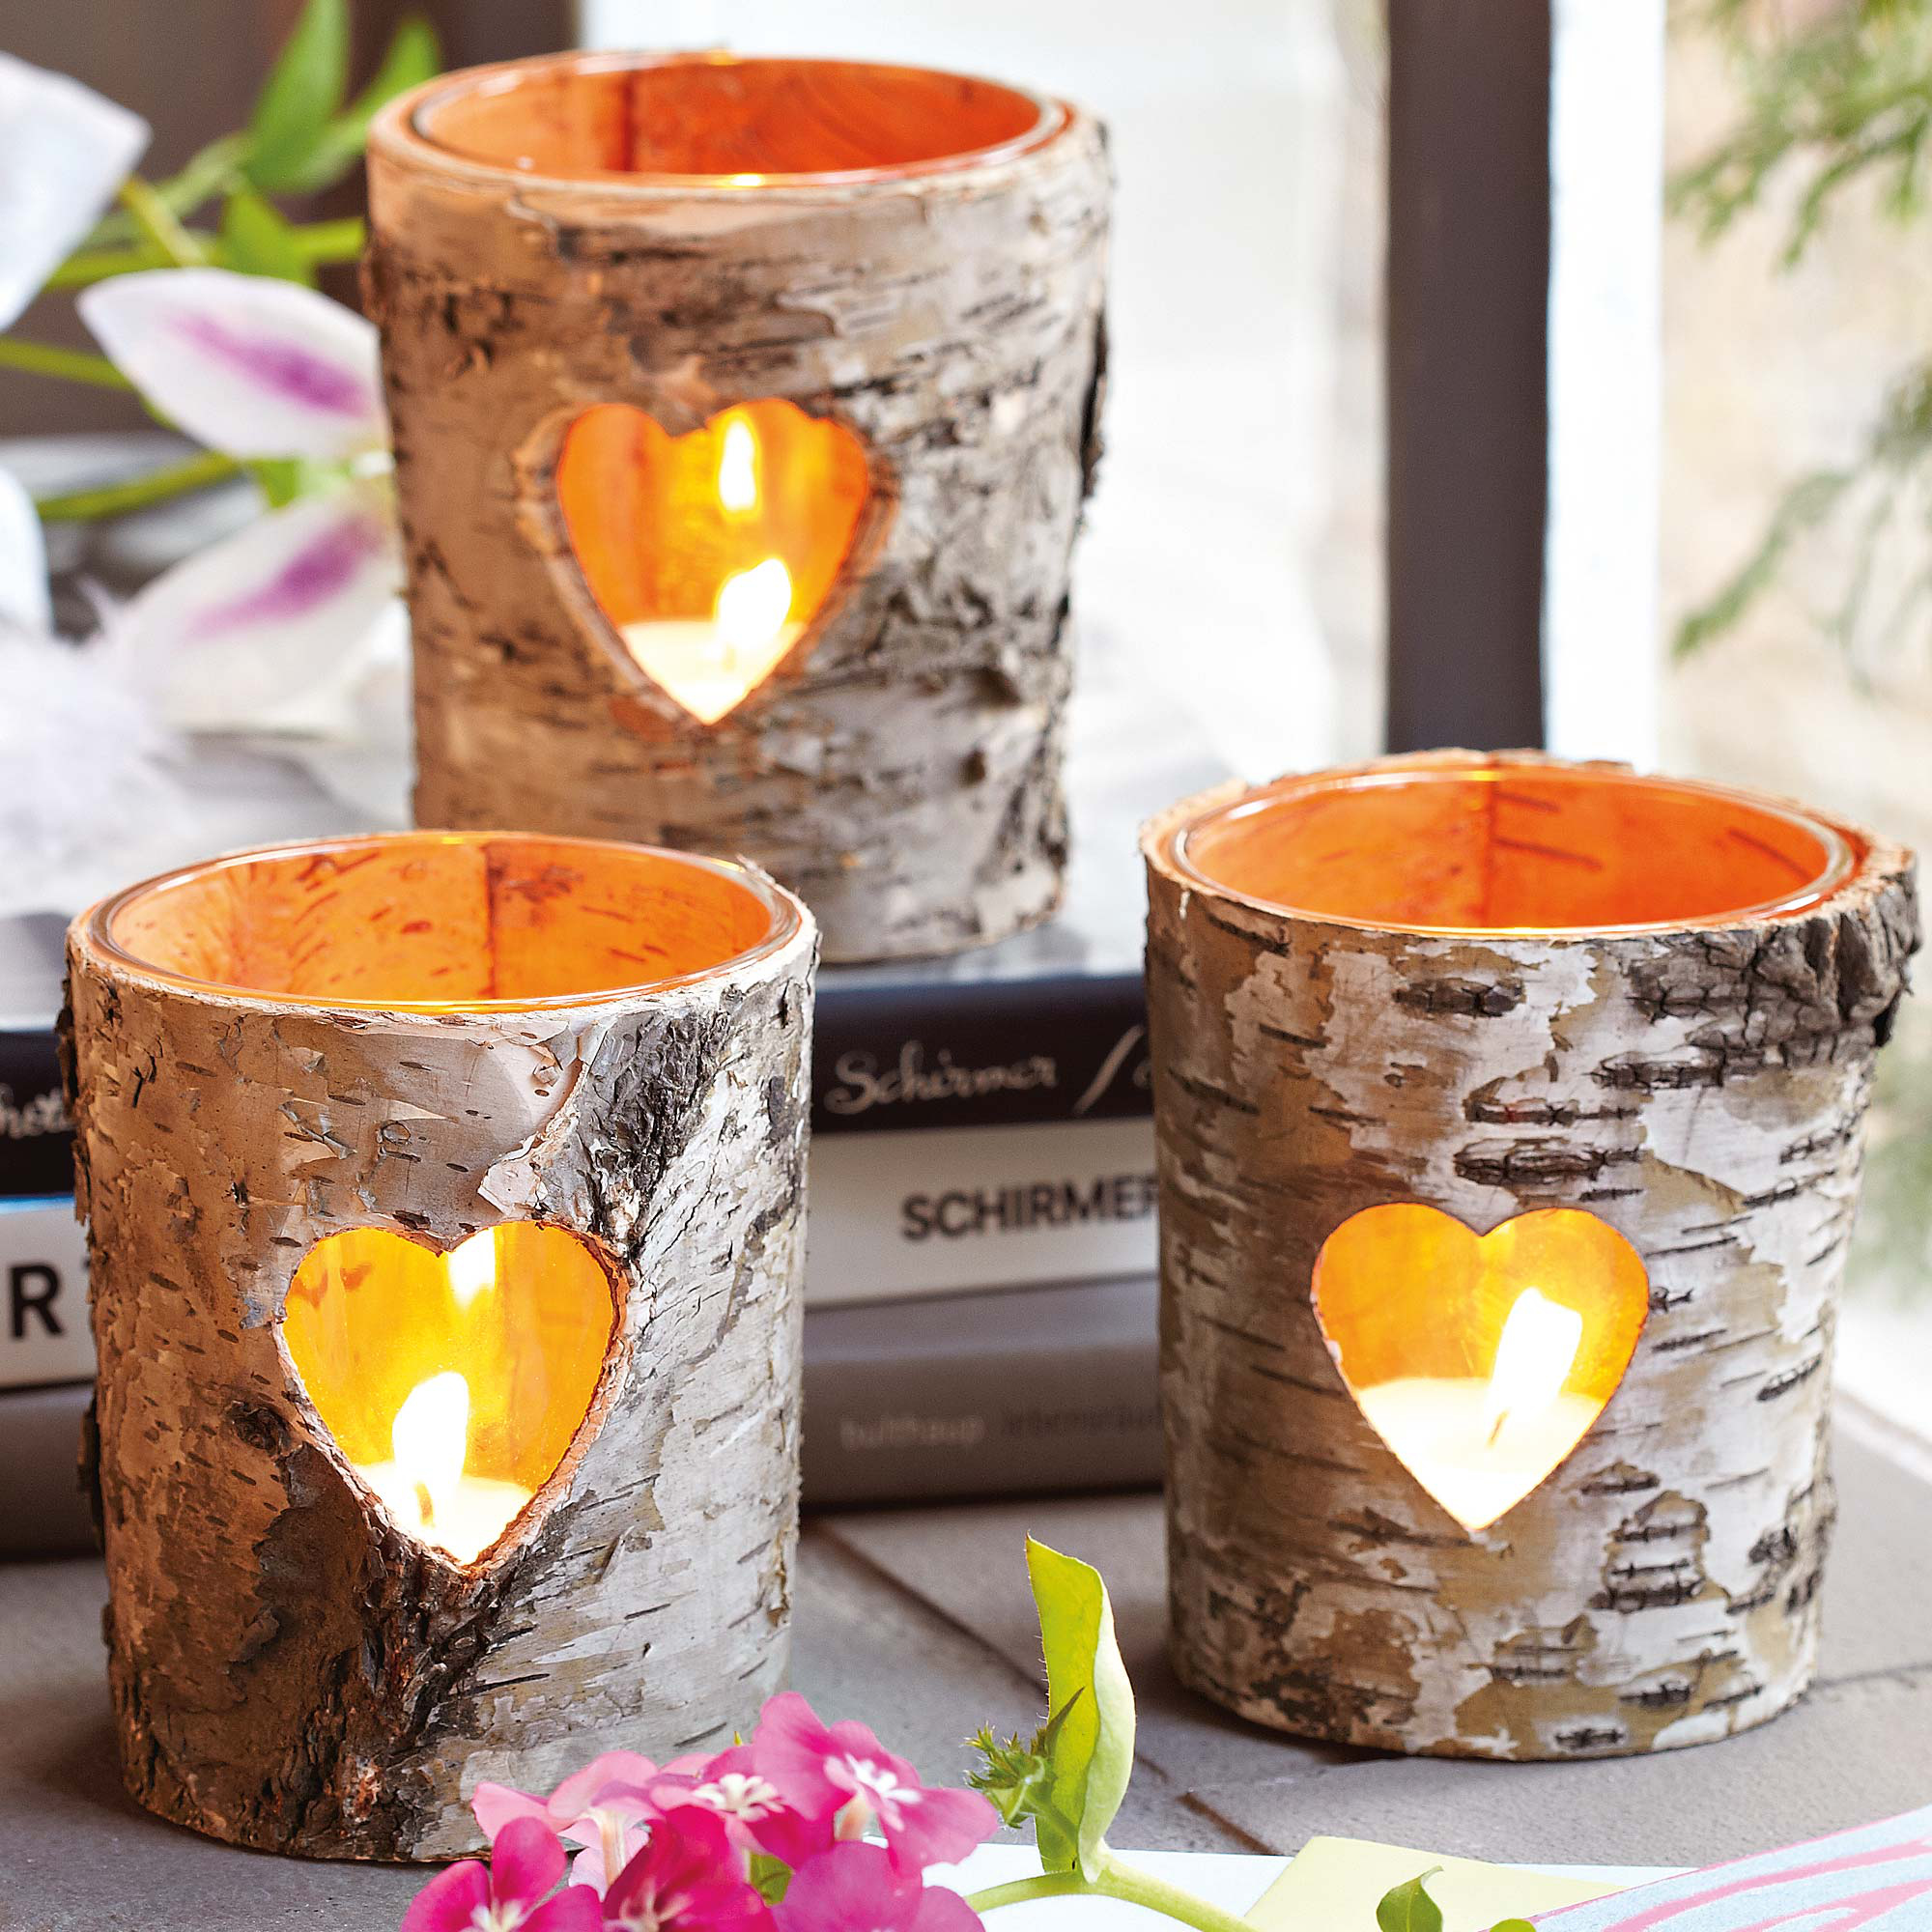 40 extremely clever diy candle holder projects for your home - Diy Candle Holders